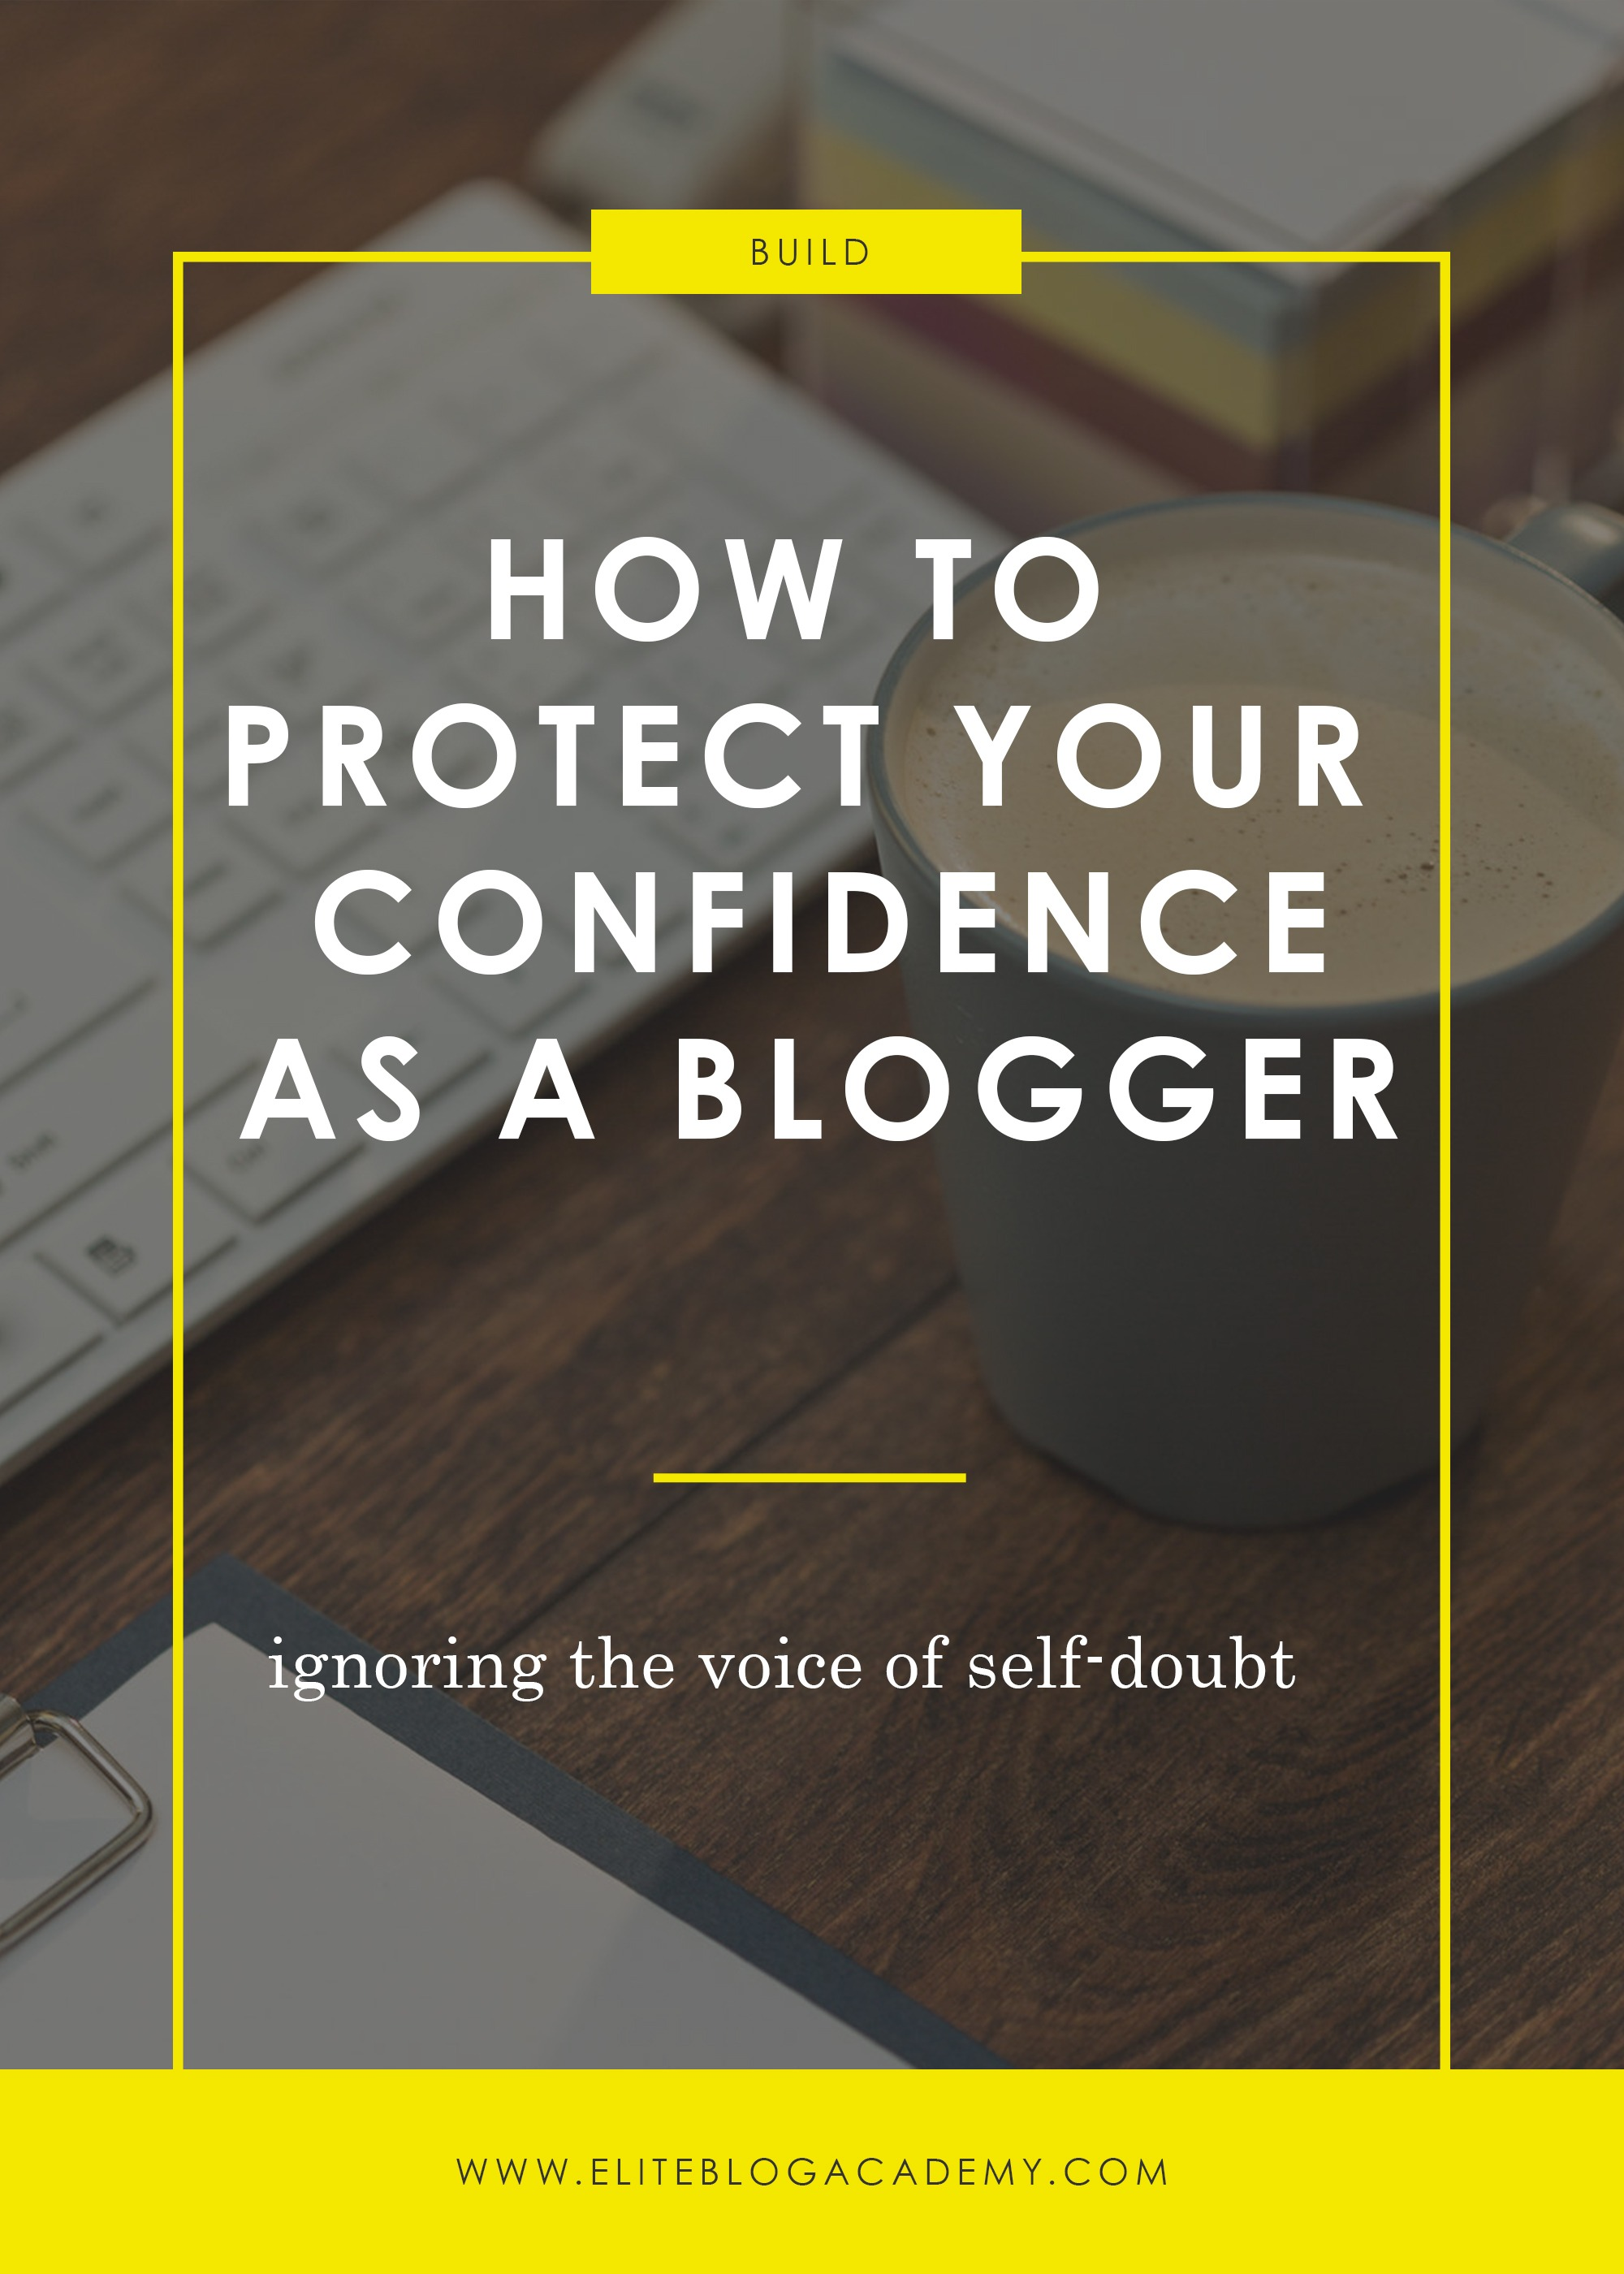 How to Protect Your Confidence as a Blogger